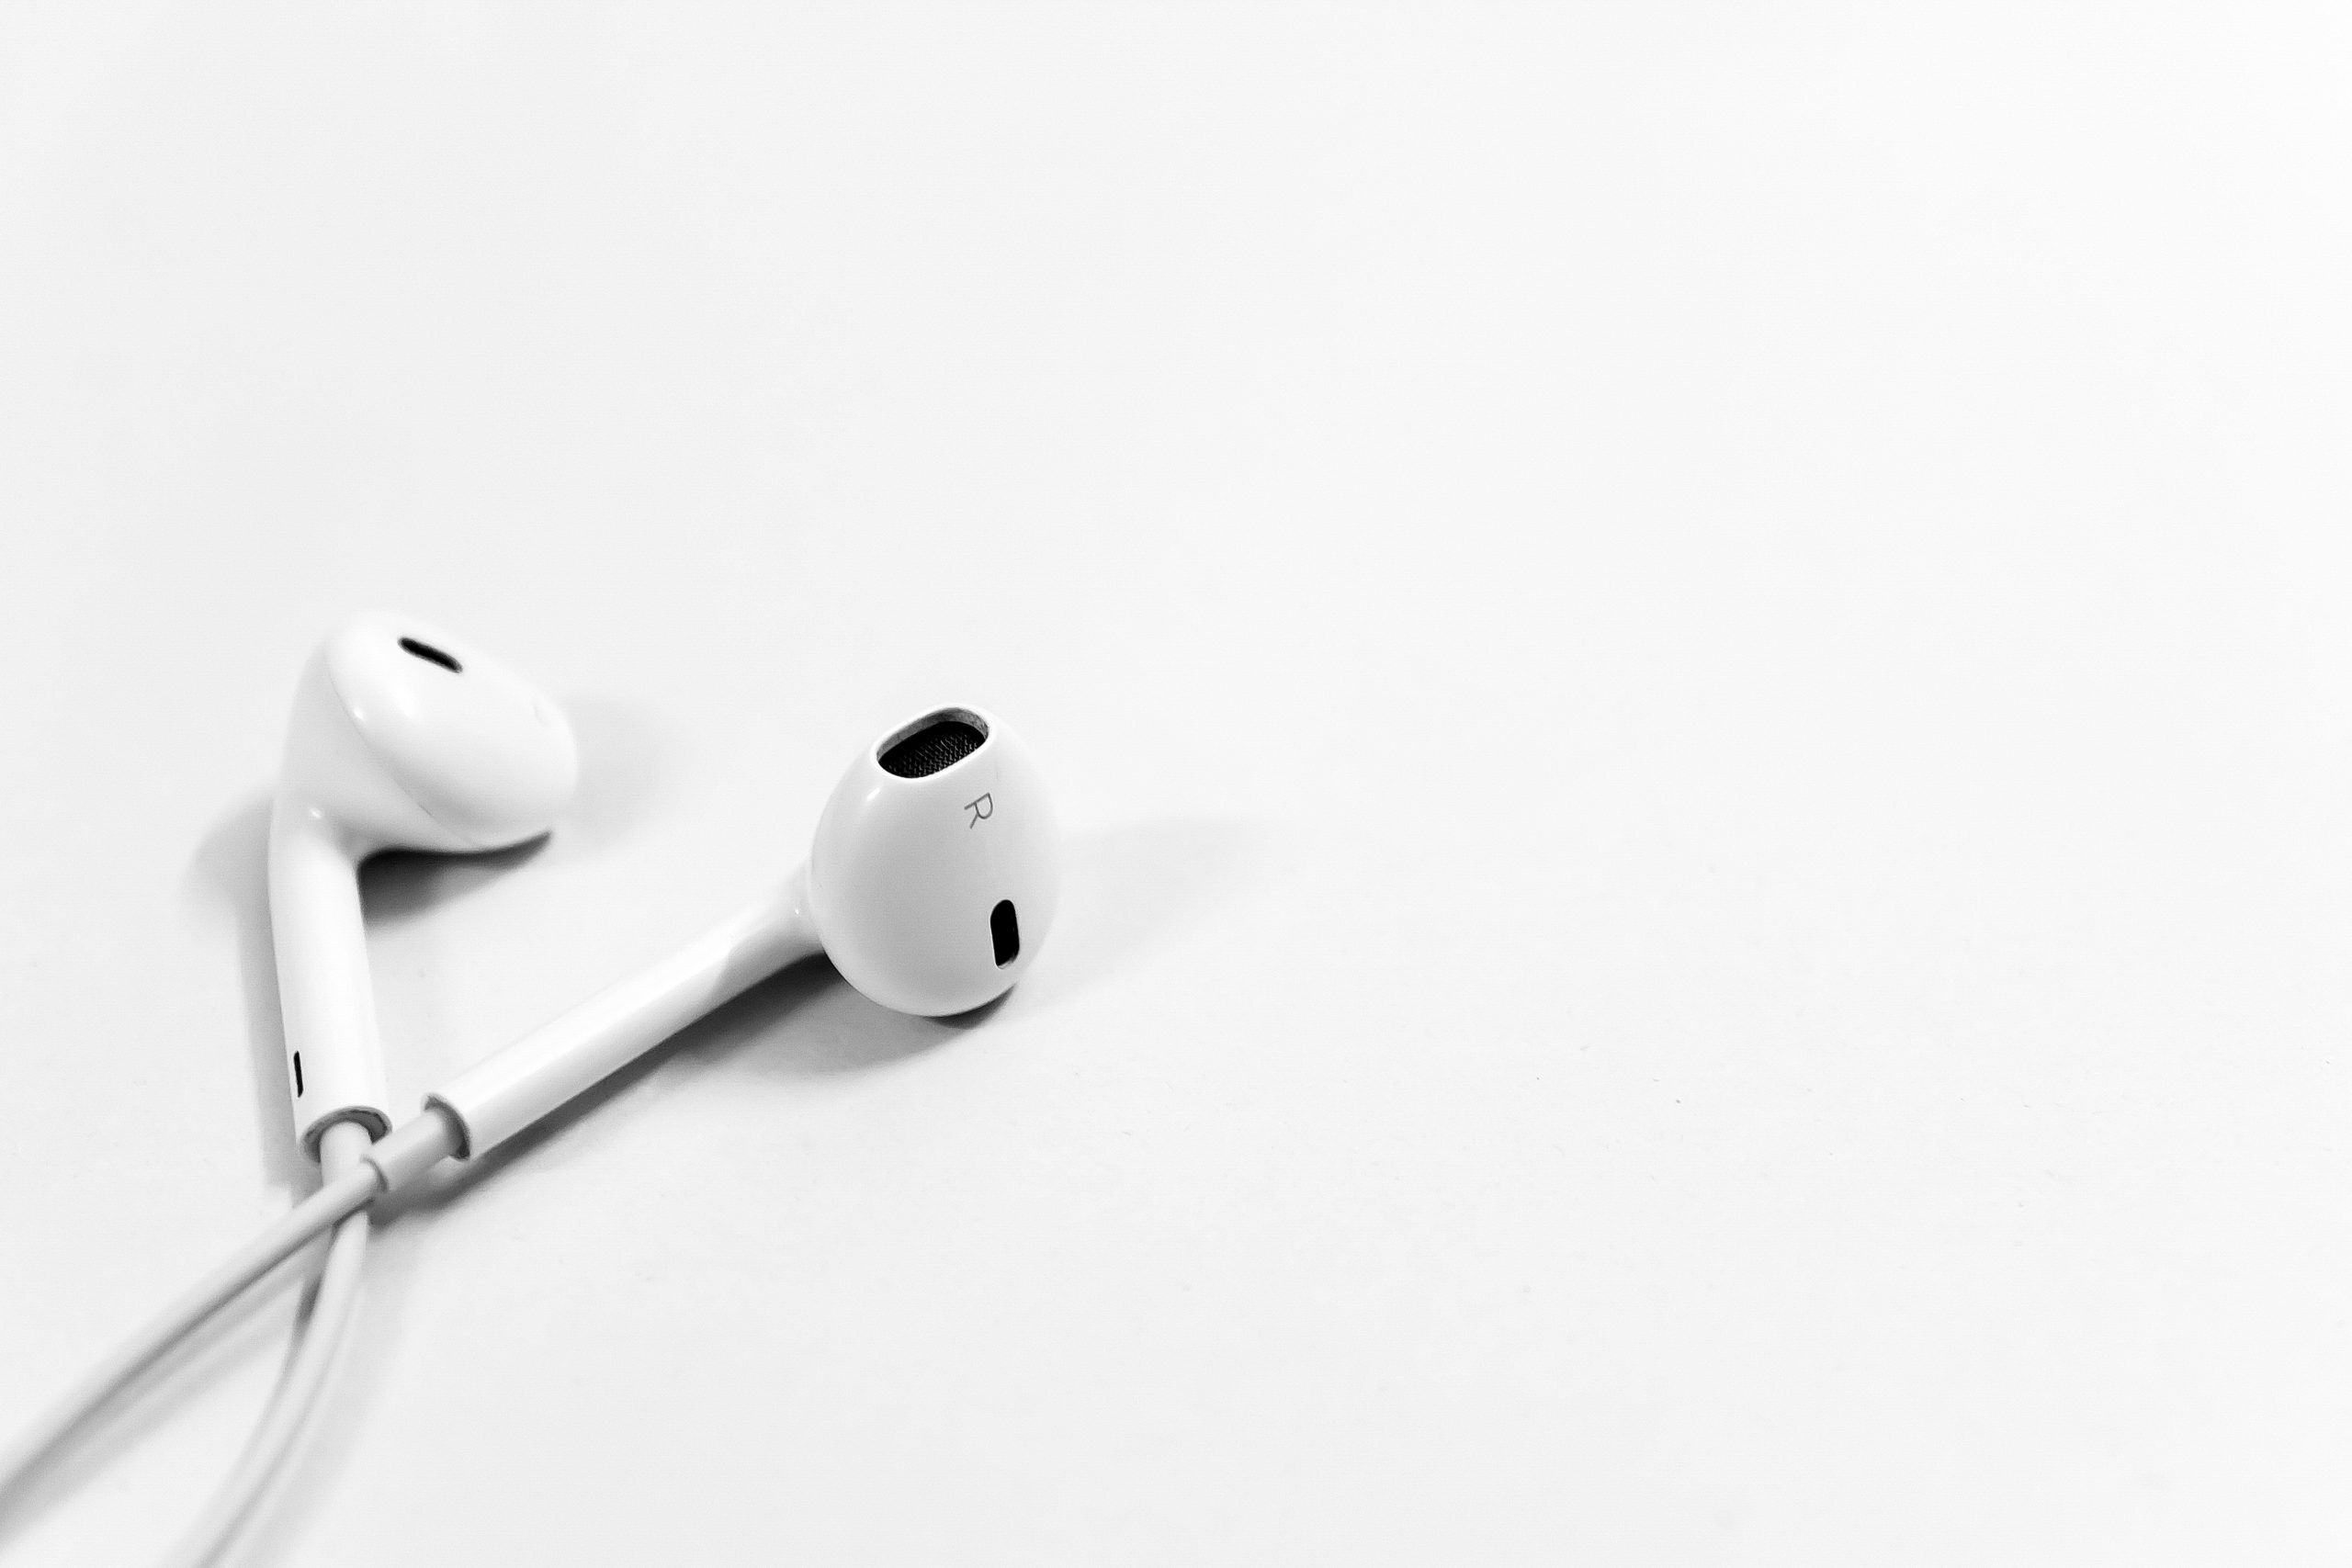 an image of earphones.